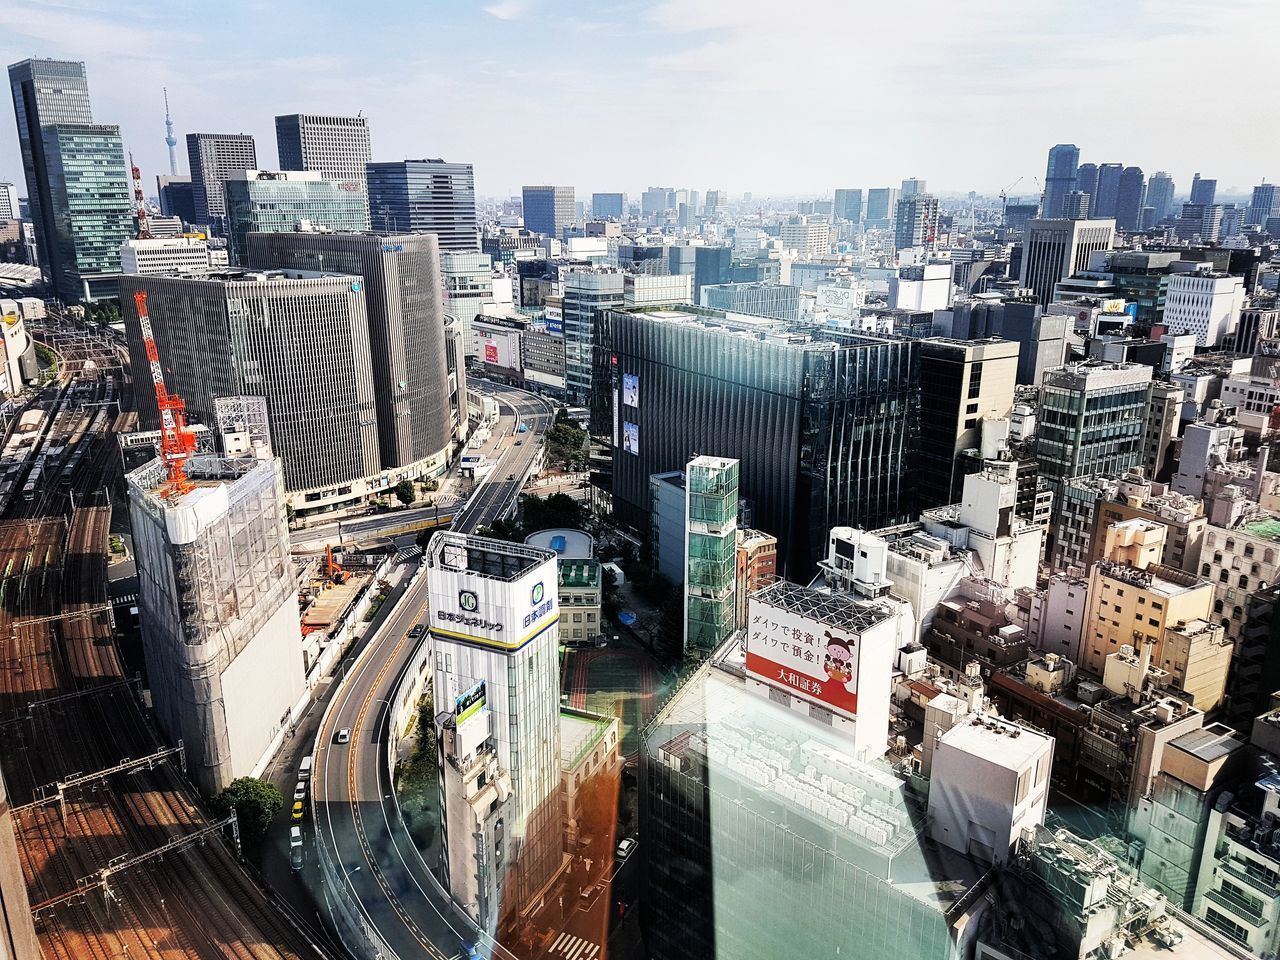 architecture, skyscraper, cityscape, city, building exterior, modern, built structure, high angle view, no people, outdoors, tall, day, sky